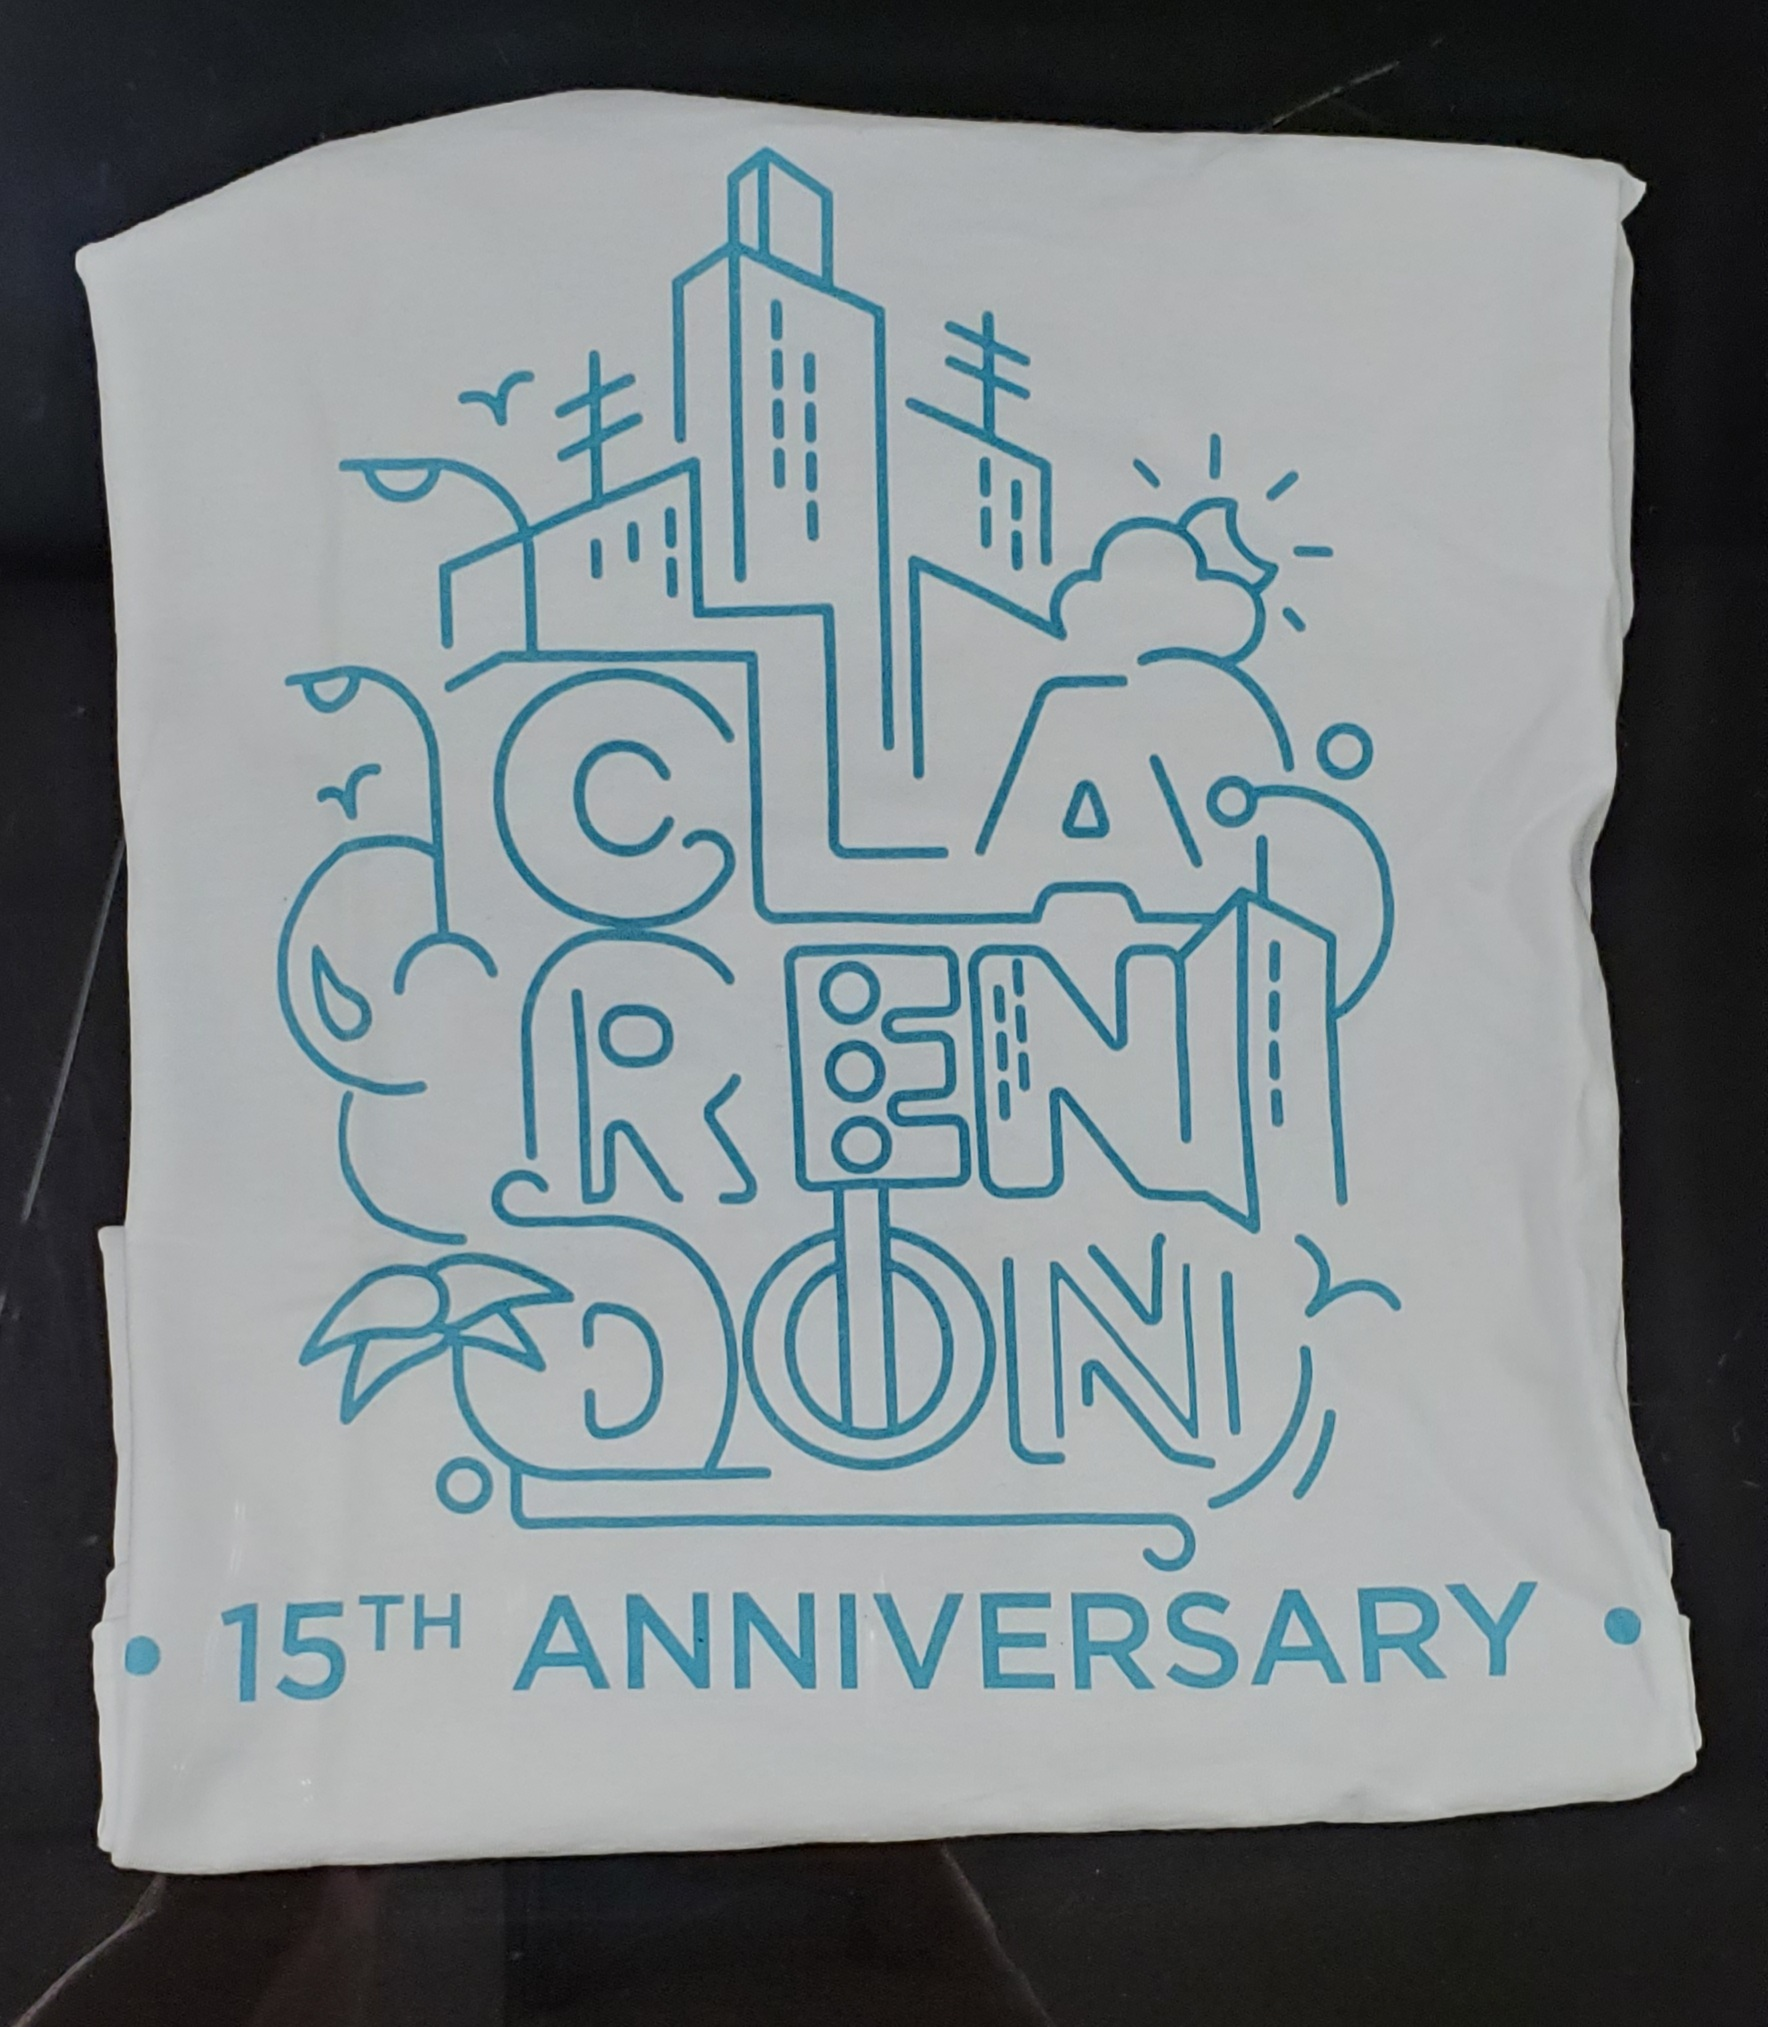 White t-shirt with blue outlined block letters spelling out Clarendon. 15th Anniversary is written underneath.